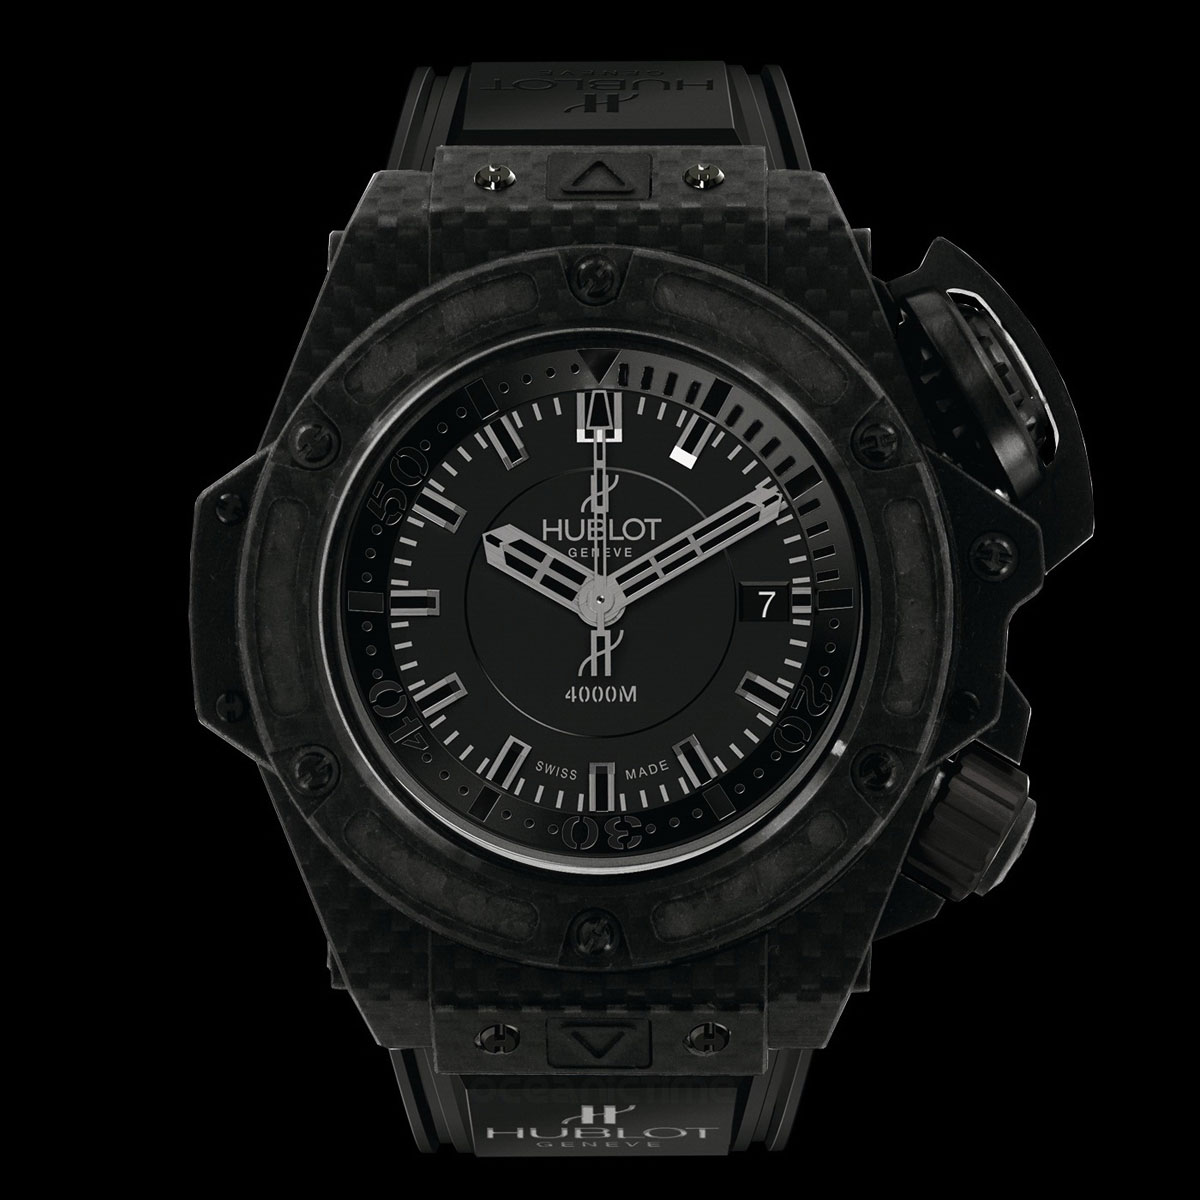 Hublot King Power Oceanographic 4000 Carbon Fiber